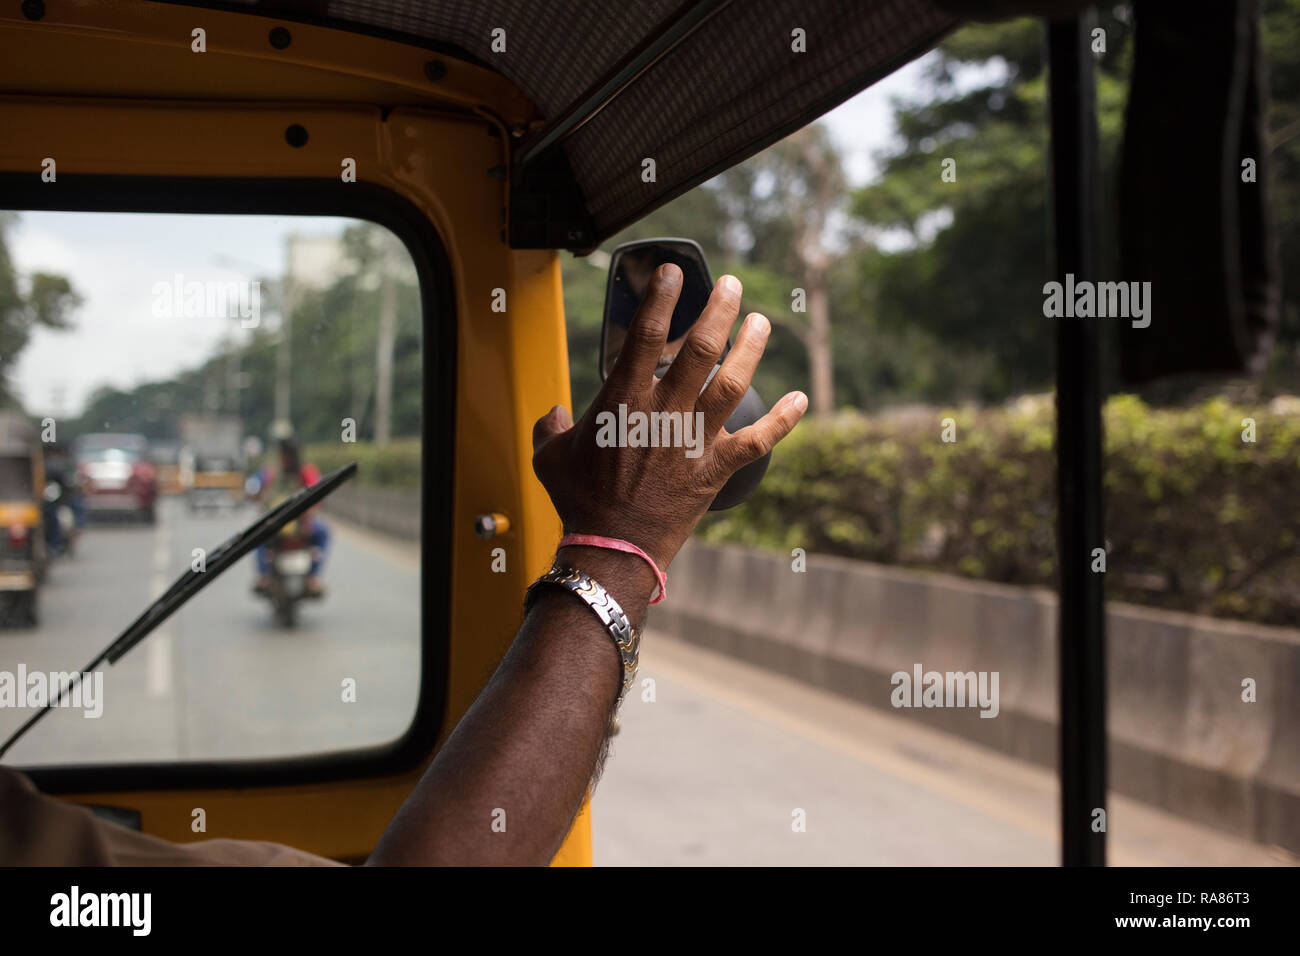 India Road Accident Stock Photos & India Road Accident Stock